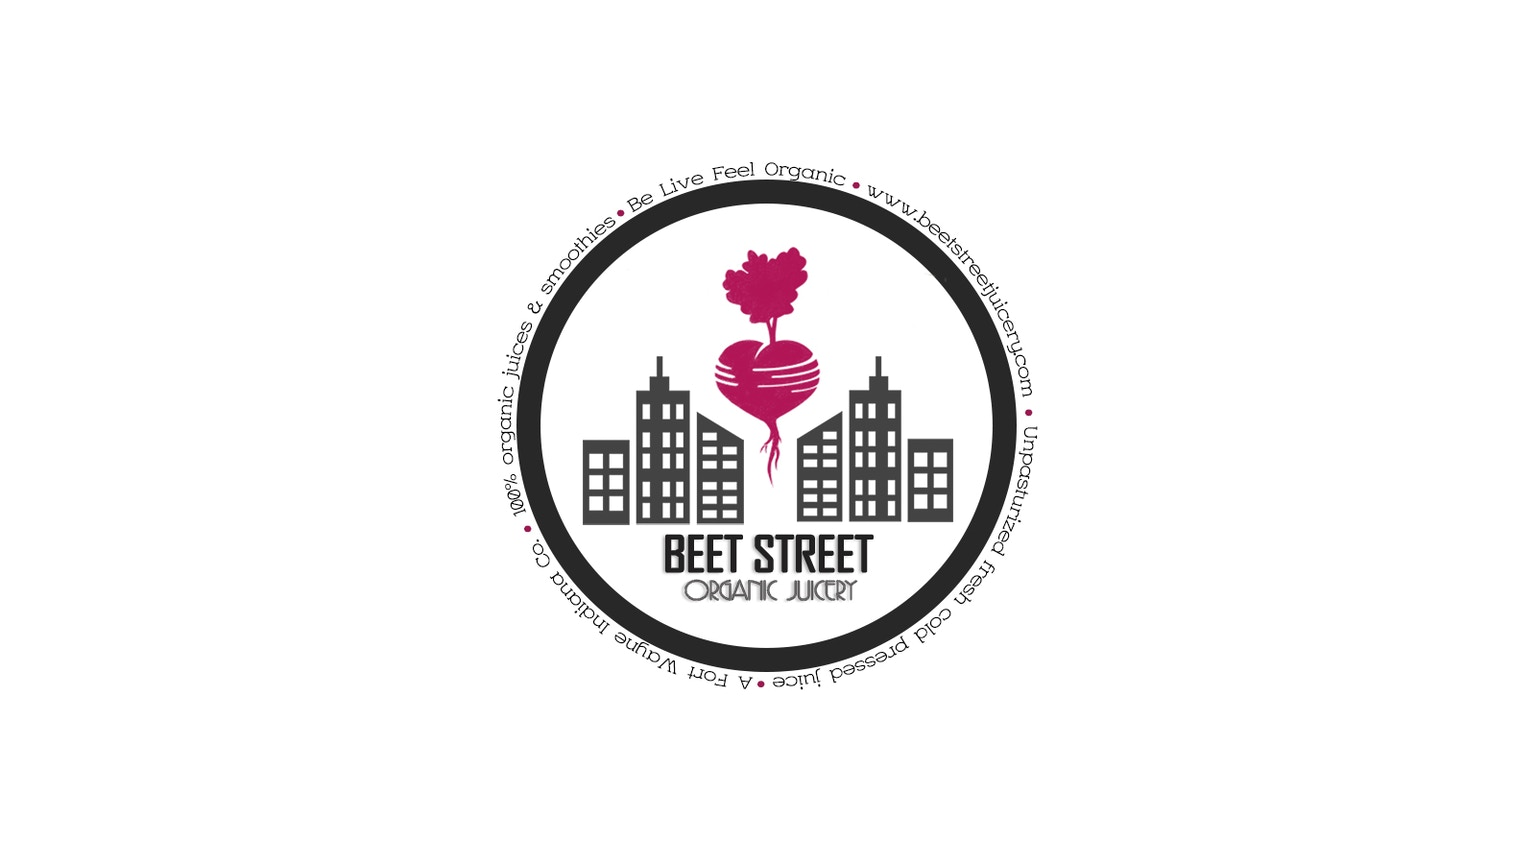 Beet Street Cold-Pressed Juicery by Sherina Collier